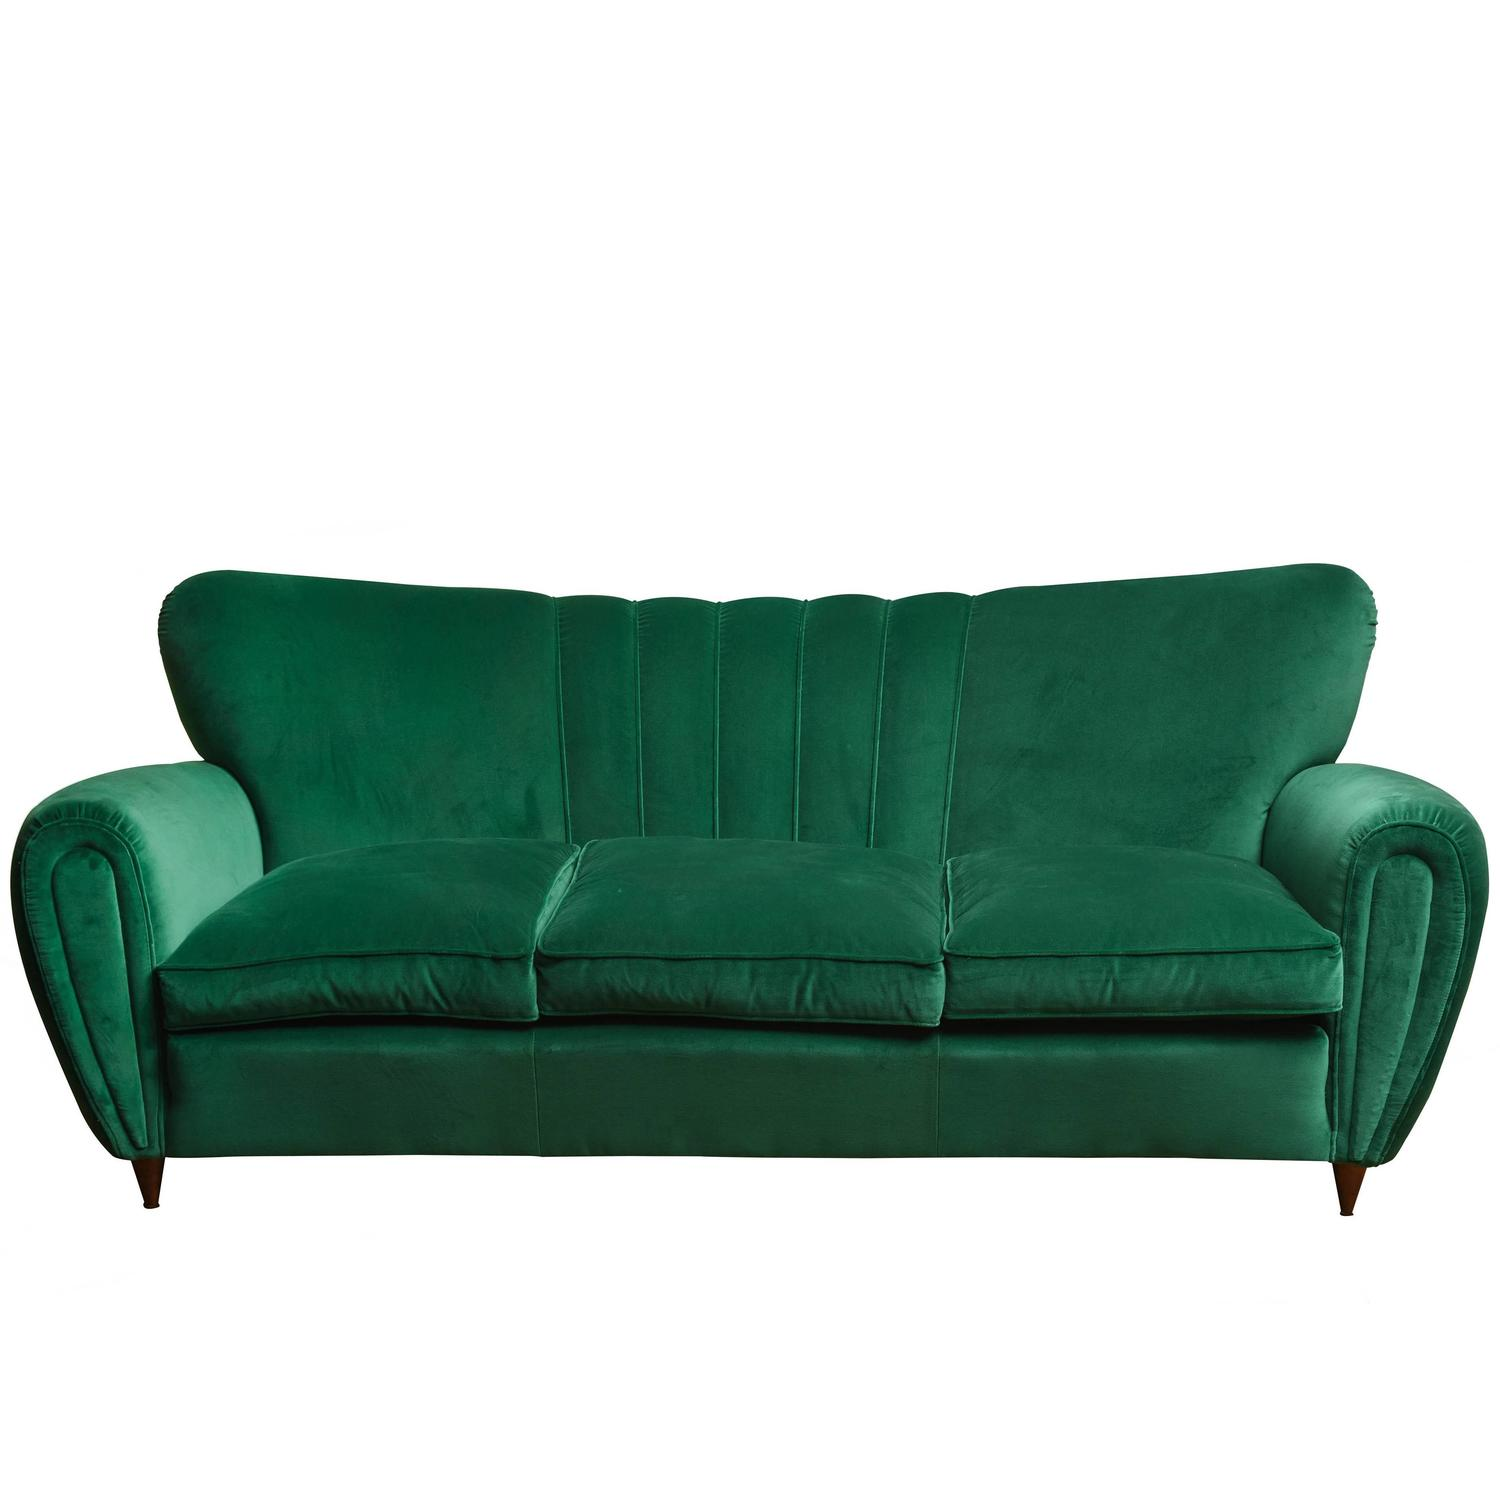 Art Deco Style Sofas Art Deco Sofa At 1stdibs